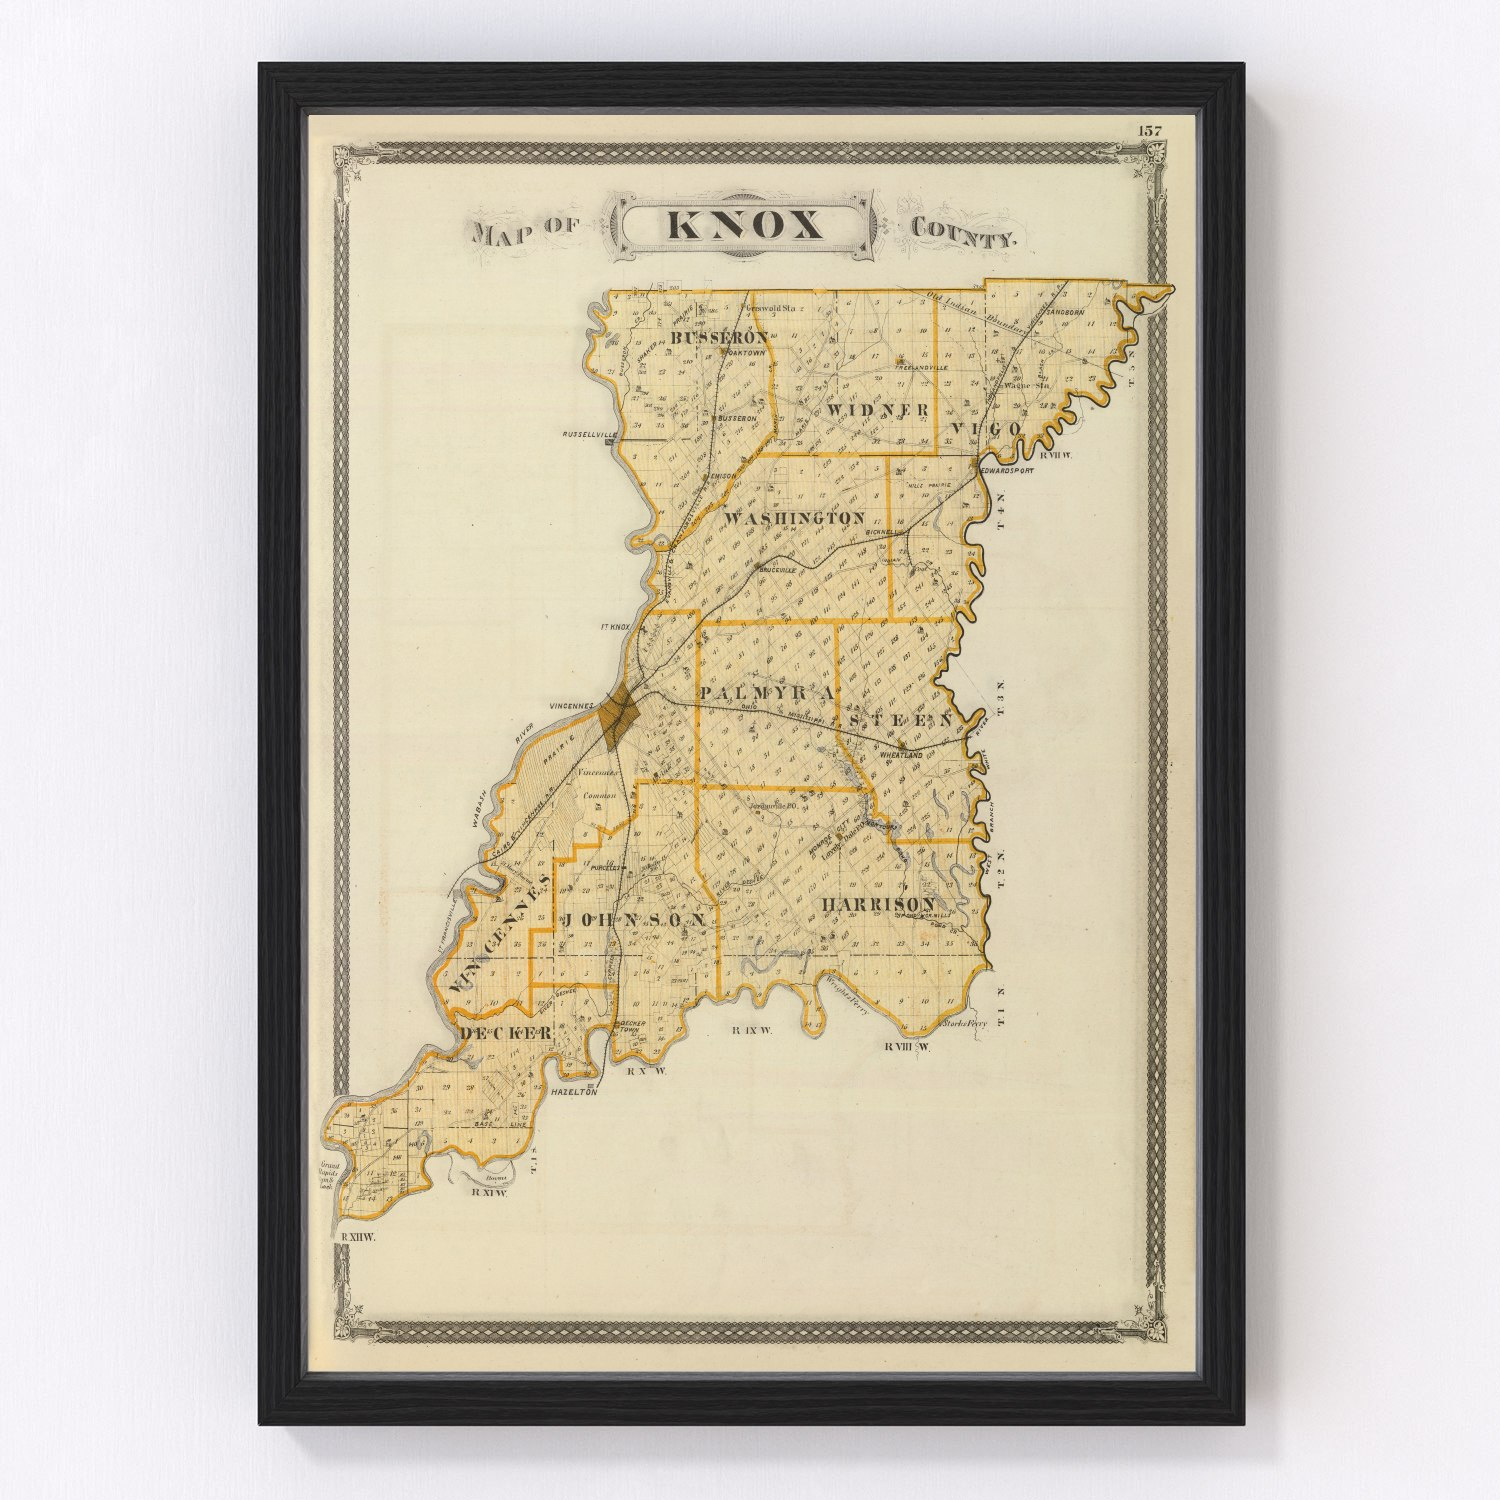 Vintage Map of Knox County Indiana, 1876